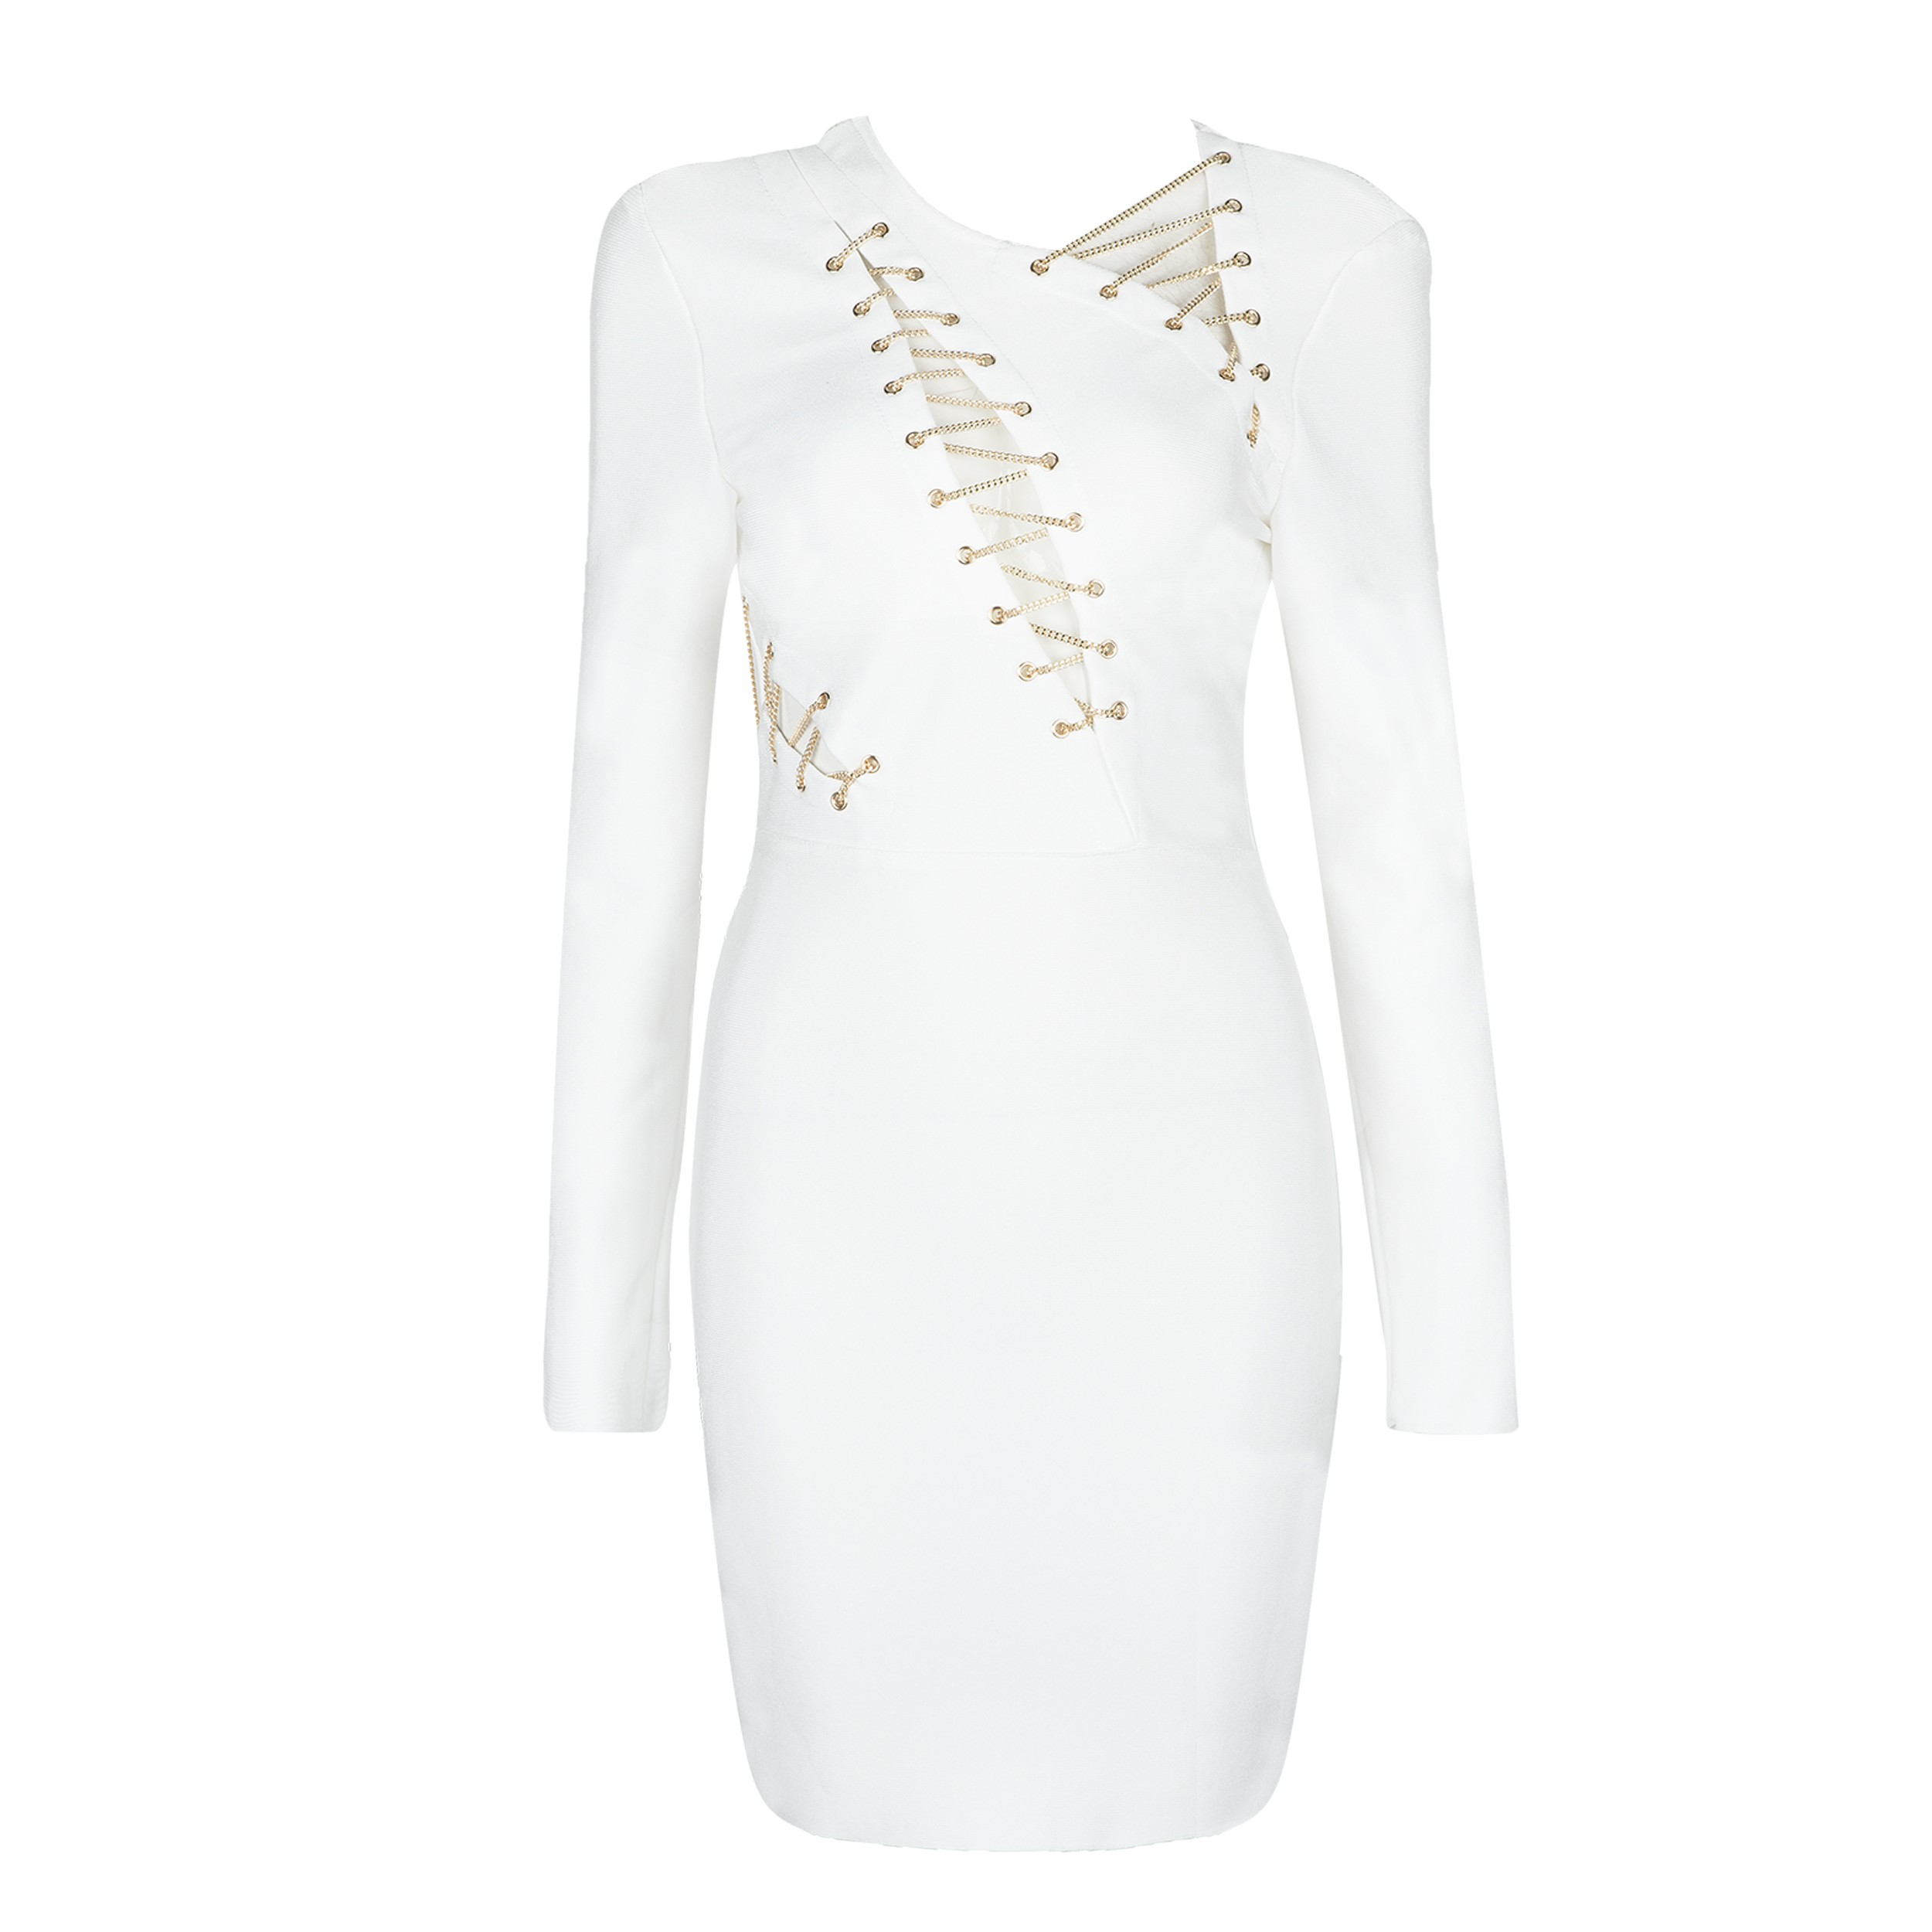 White Round Neck Long Sleeve Mini Metal Studded Fashion Bandage Dress HB5298-White